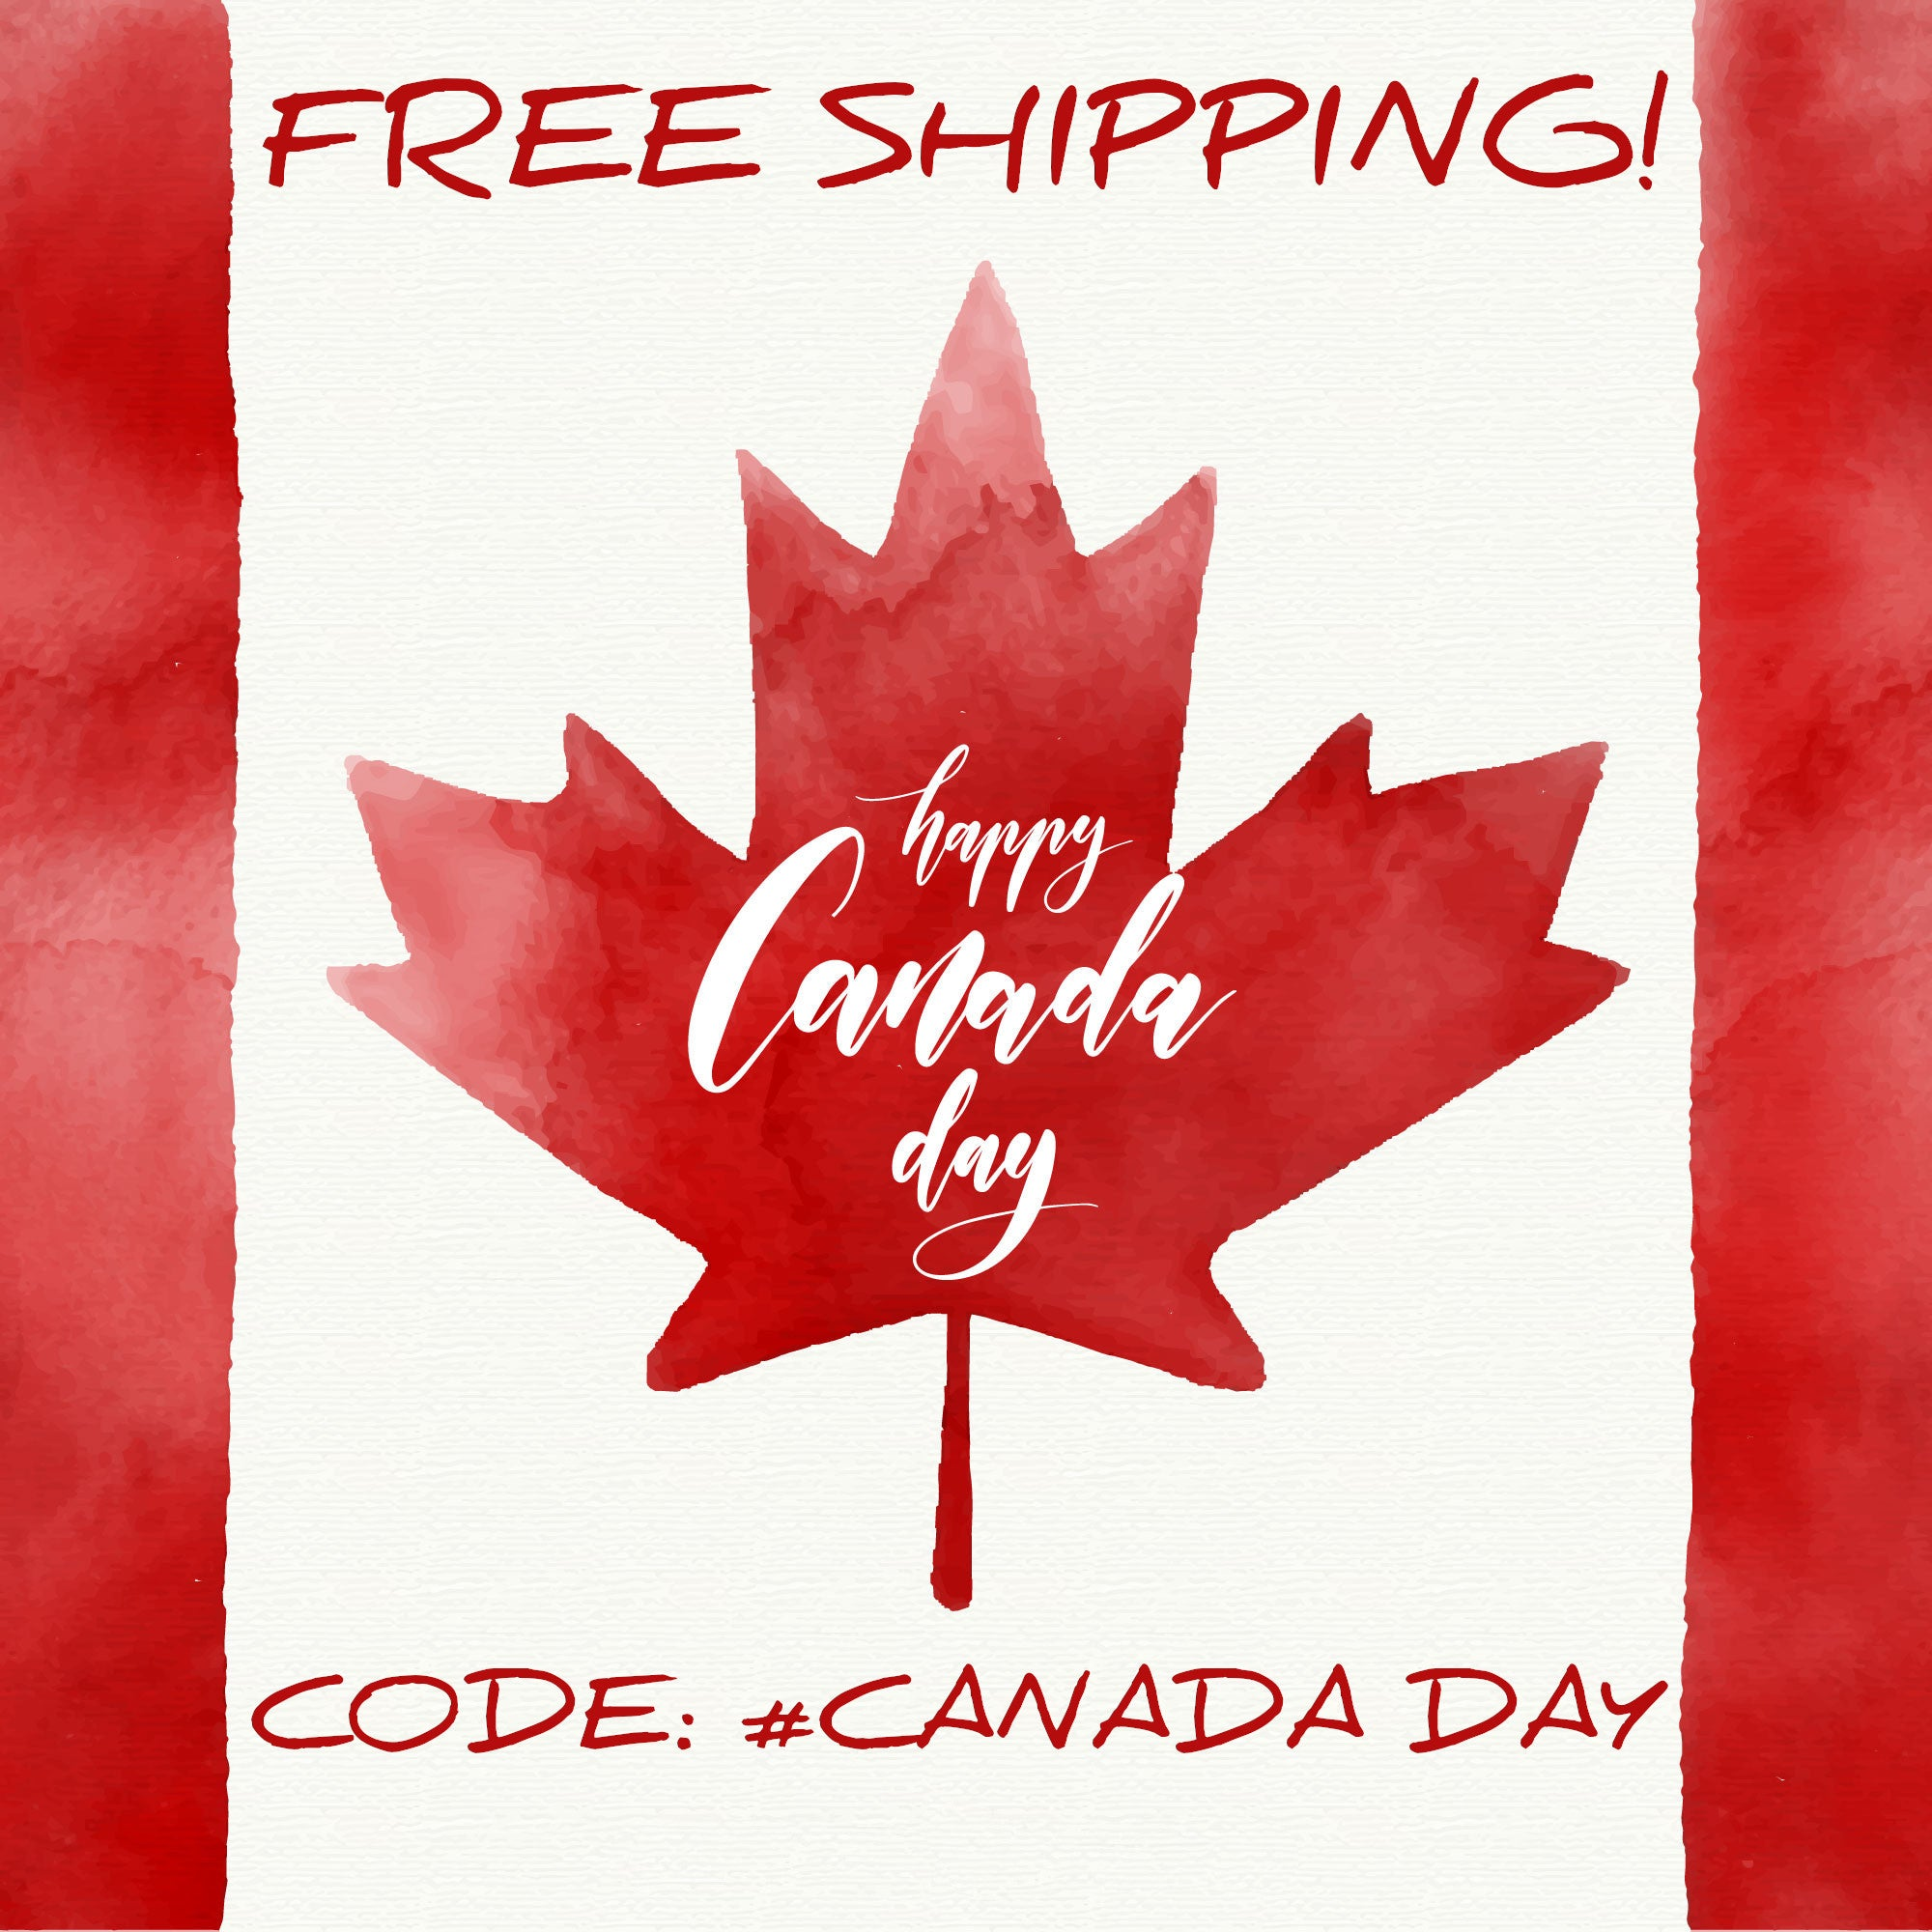 #CanadaDay Promotion: Free Shipping in Canada!